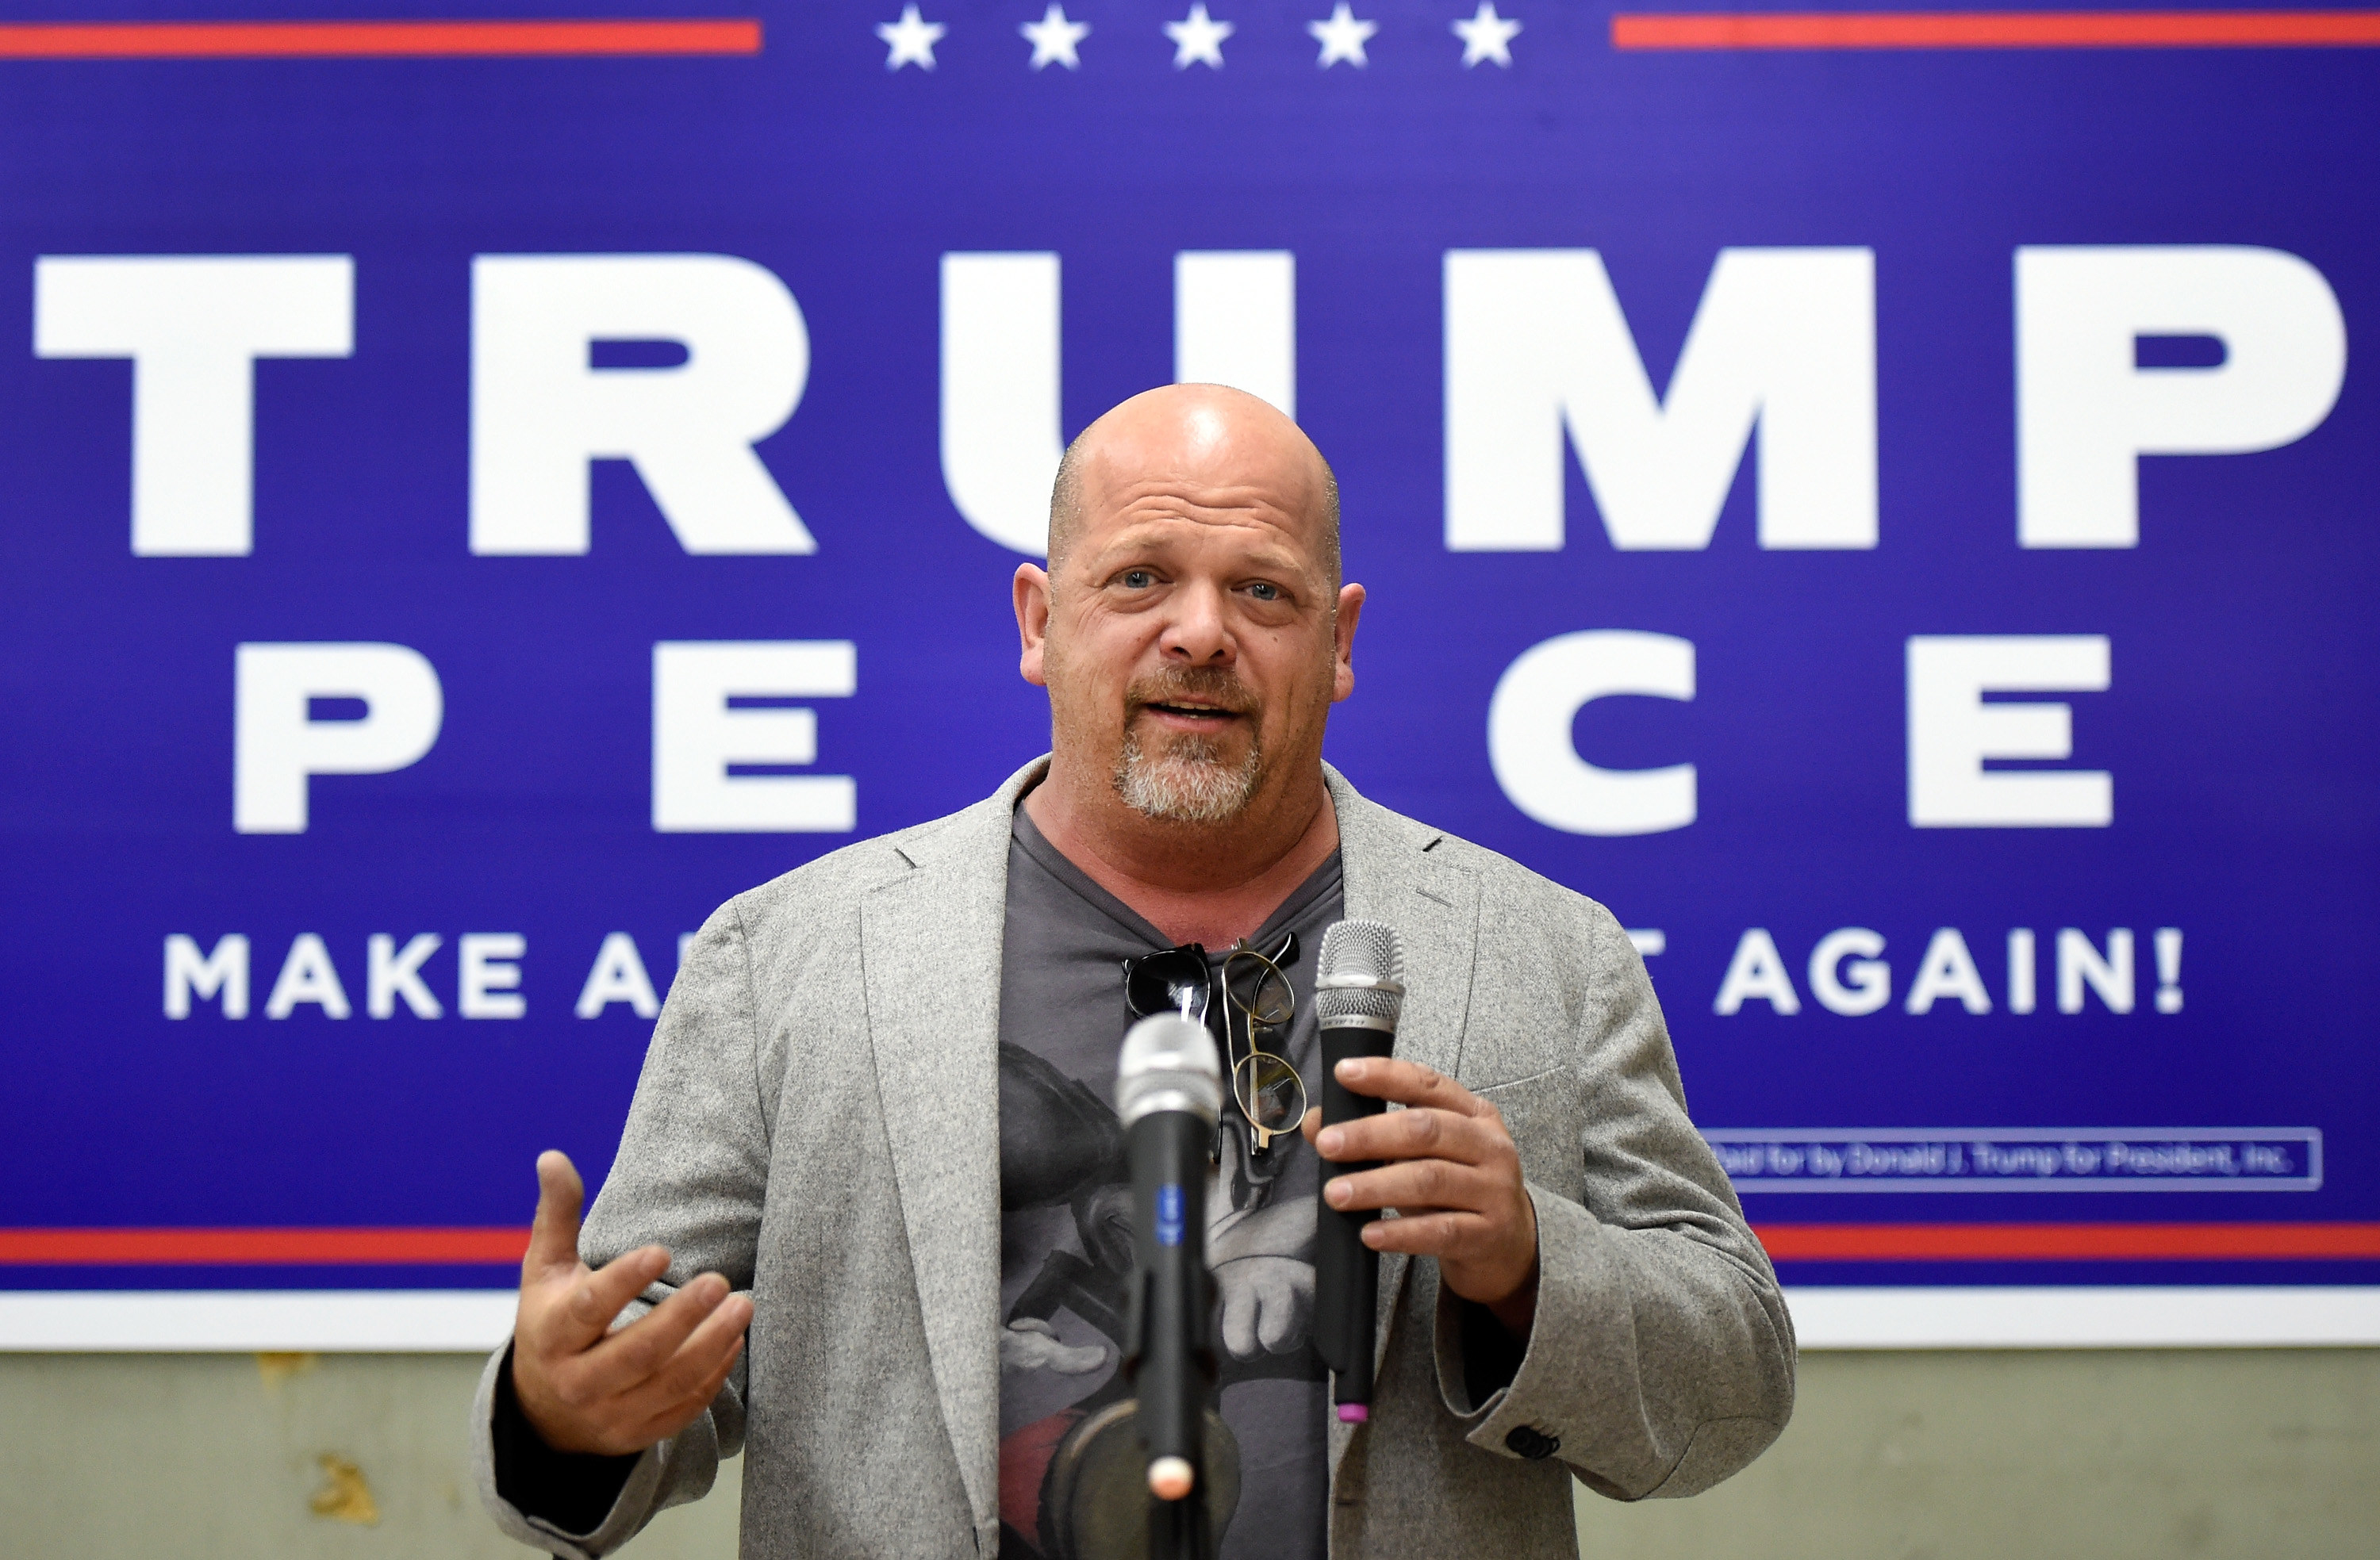 Rick speaking at a campaign event for Trump